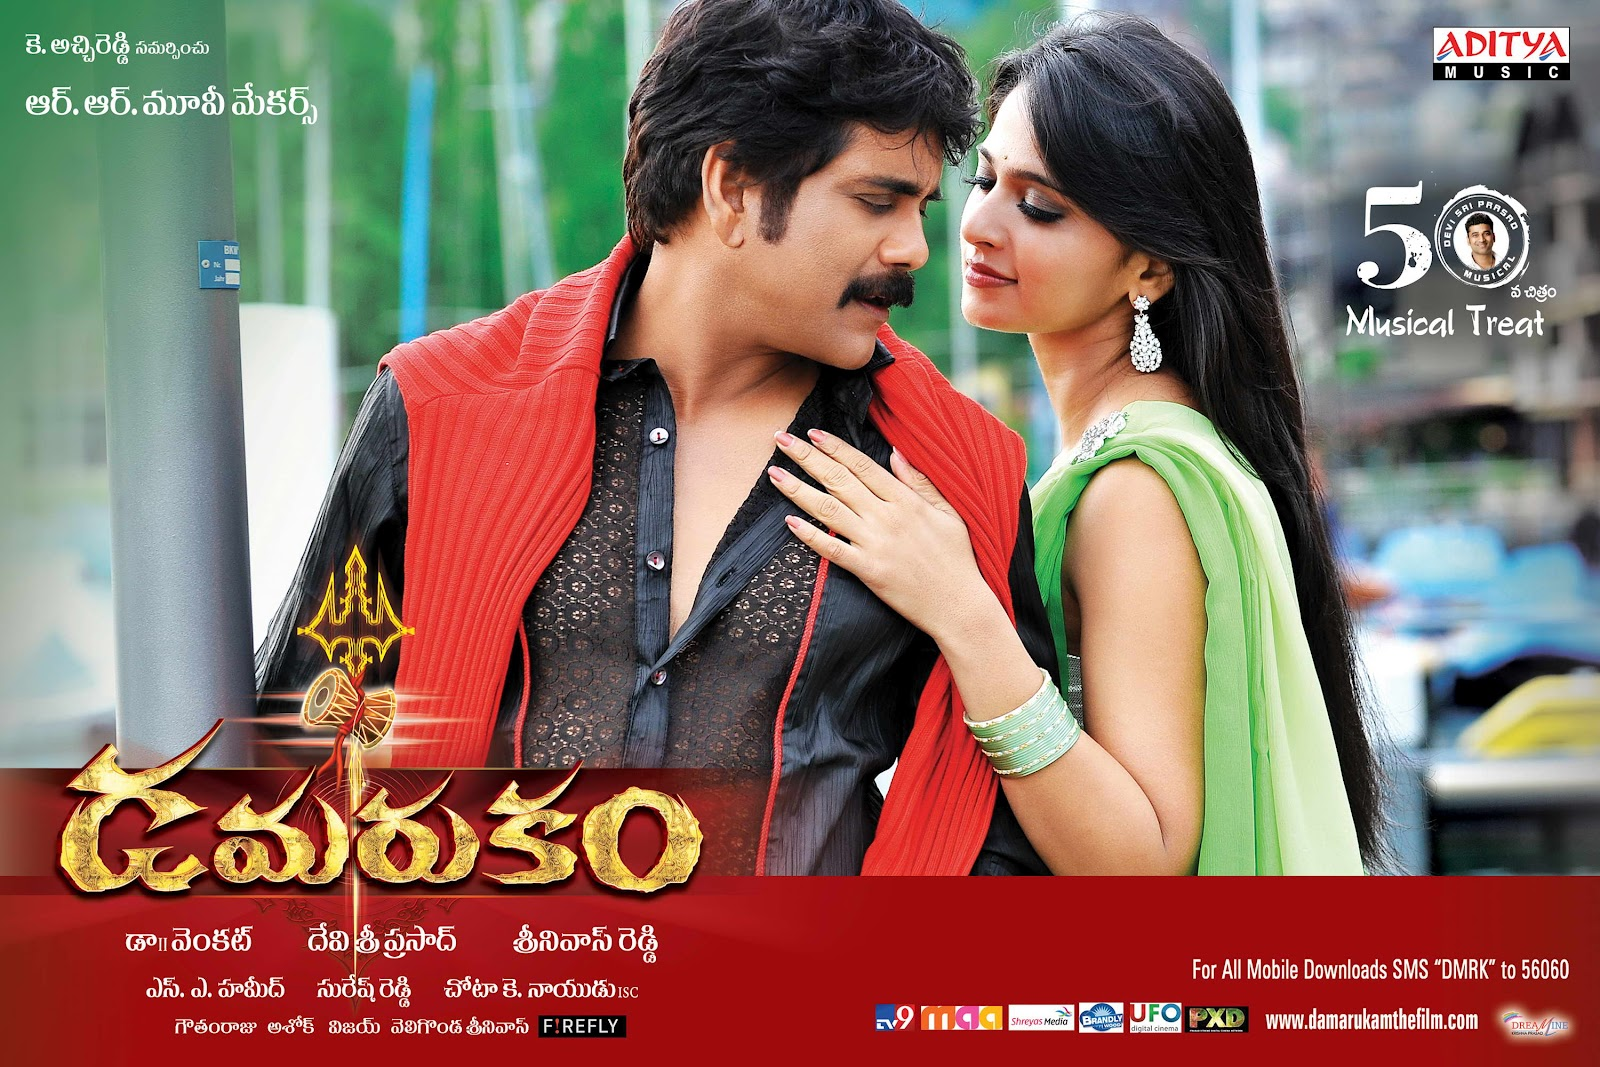 http://2.bp.blogspot.com/-DZl9cugC5rQ/UFQkFT1zGmI/AAAAAAAAciI/oUsV7DMwJME/s1600/0Damarukam-Movie-Wallpapers-16.jpg